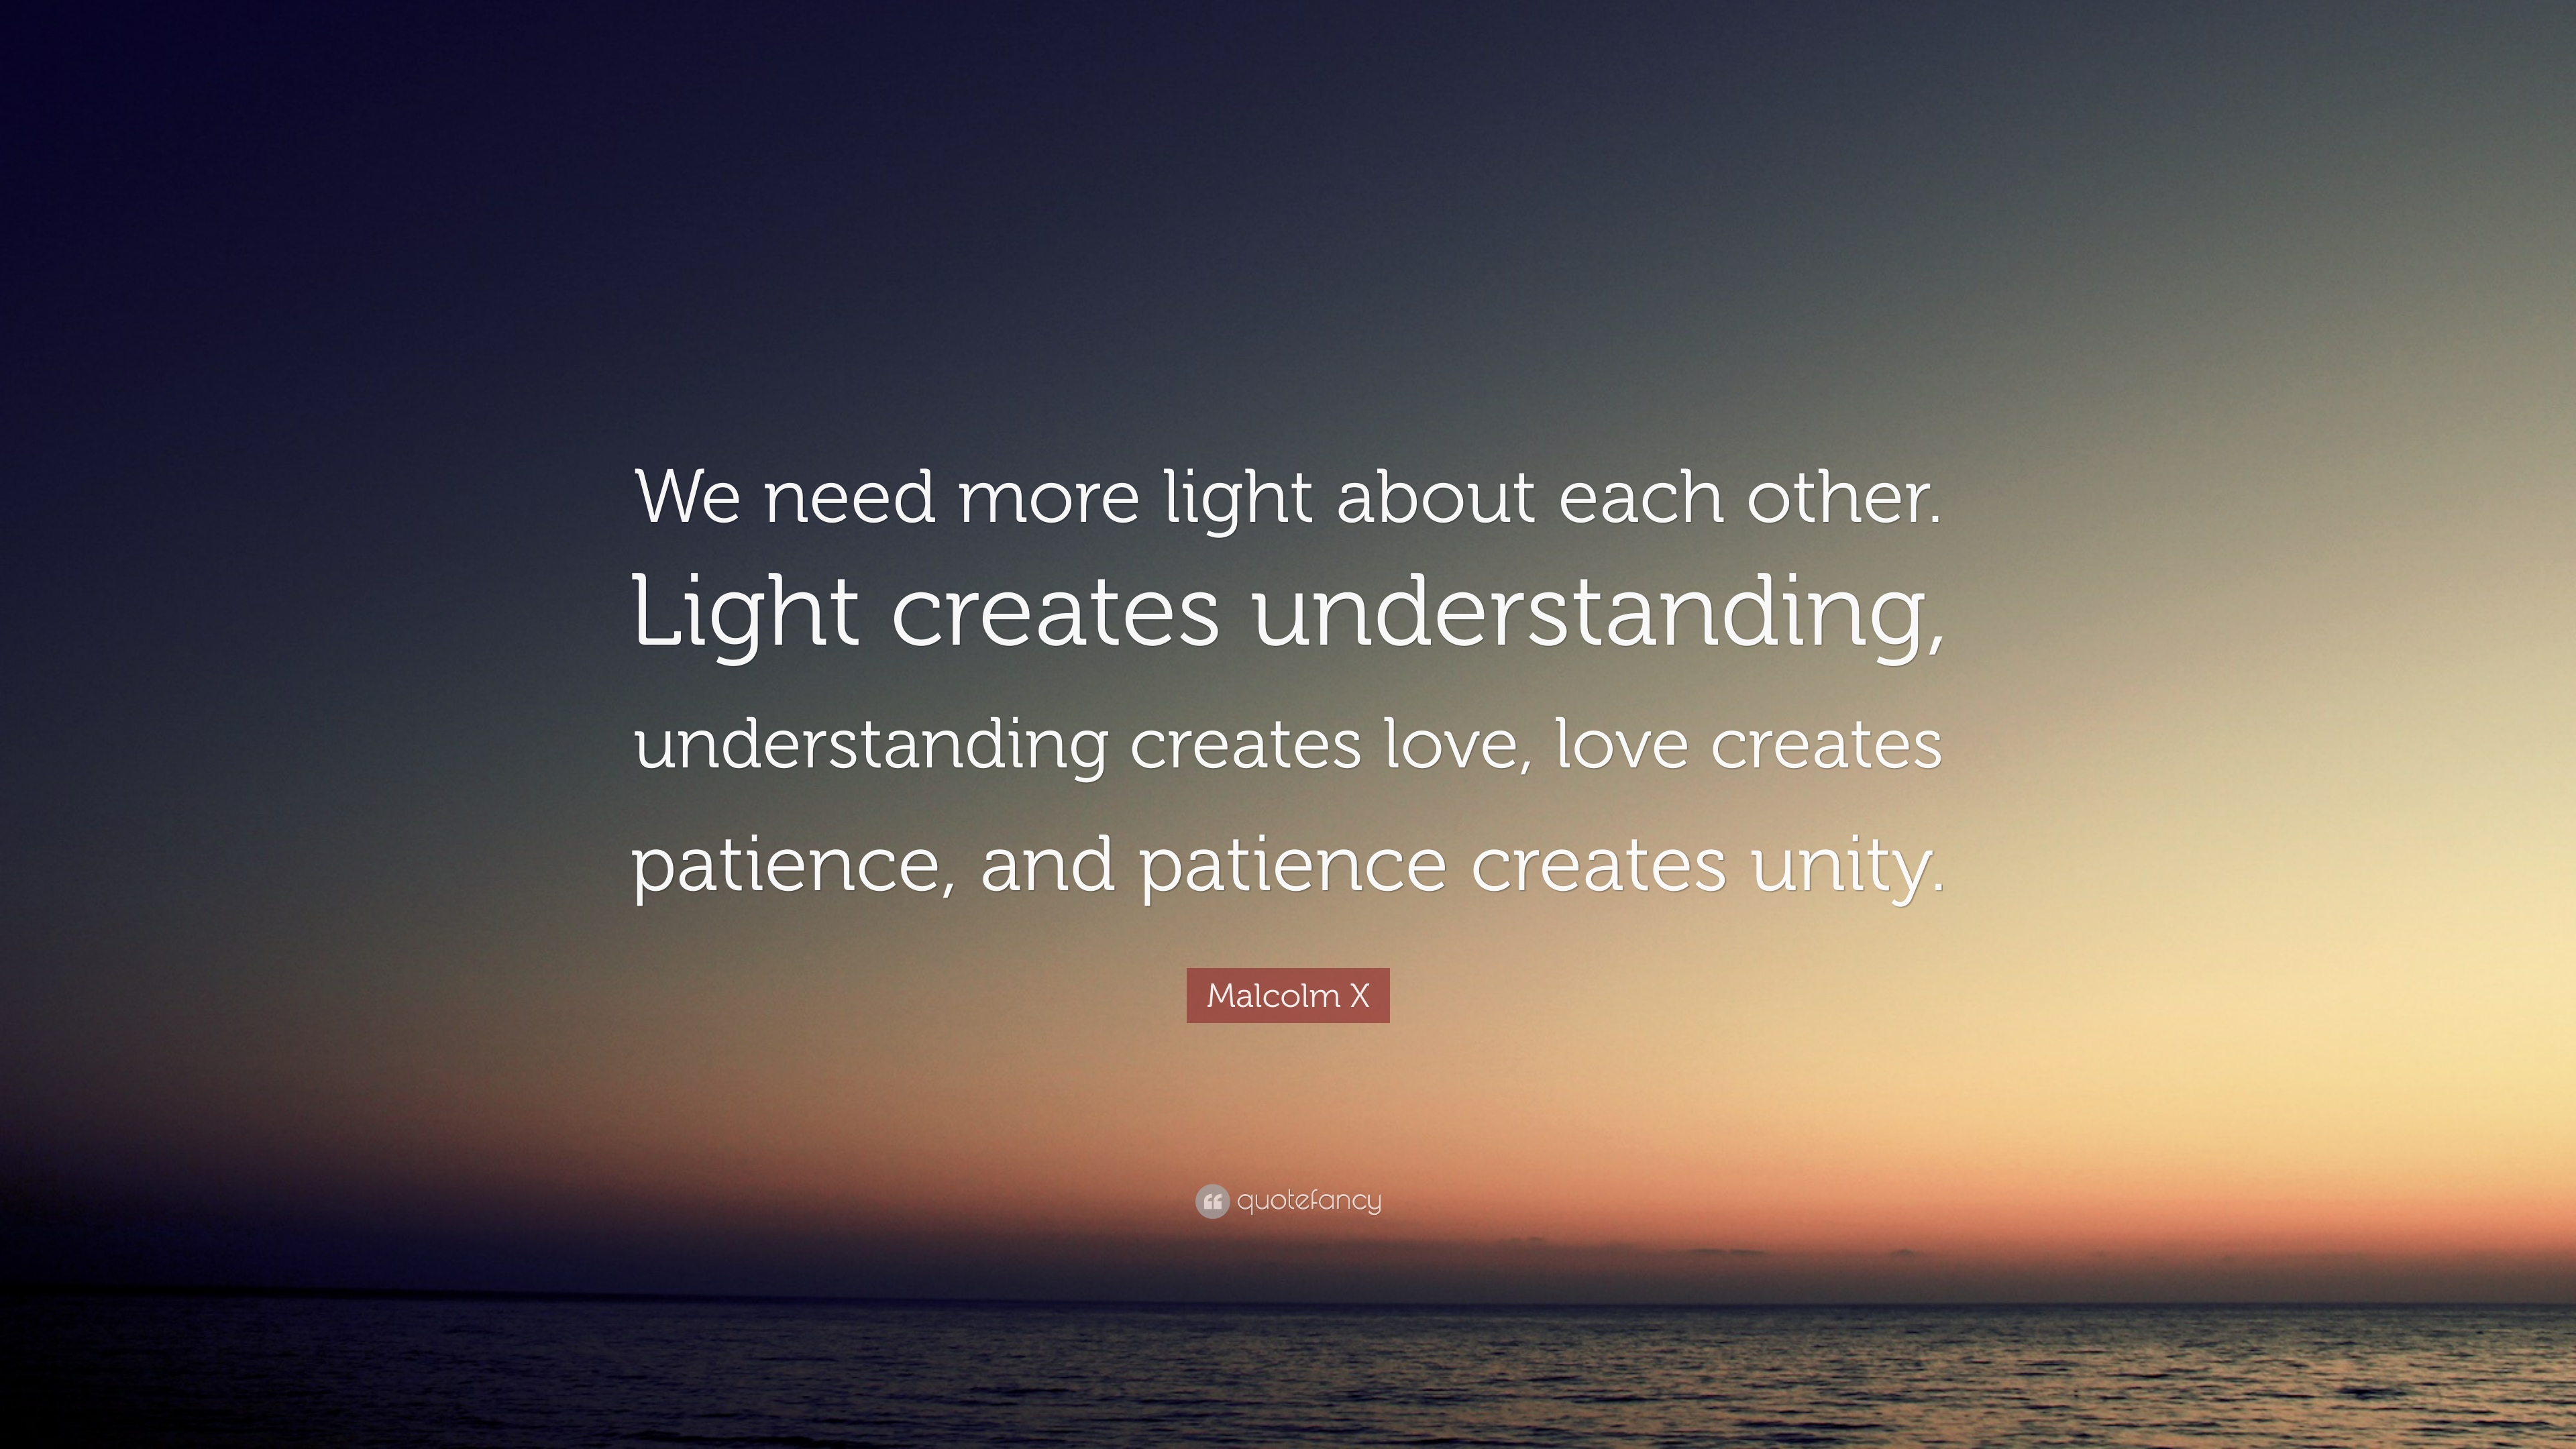 Malcolm X Quote We Need More Light About Each Other Light Creates